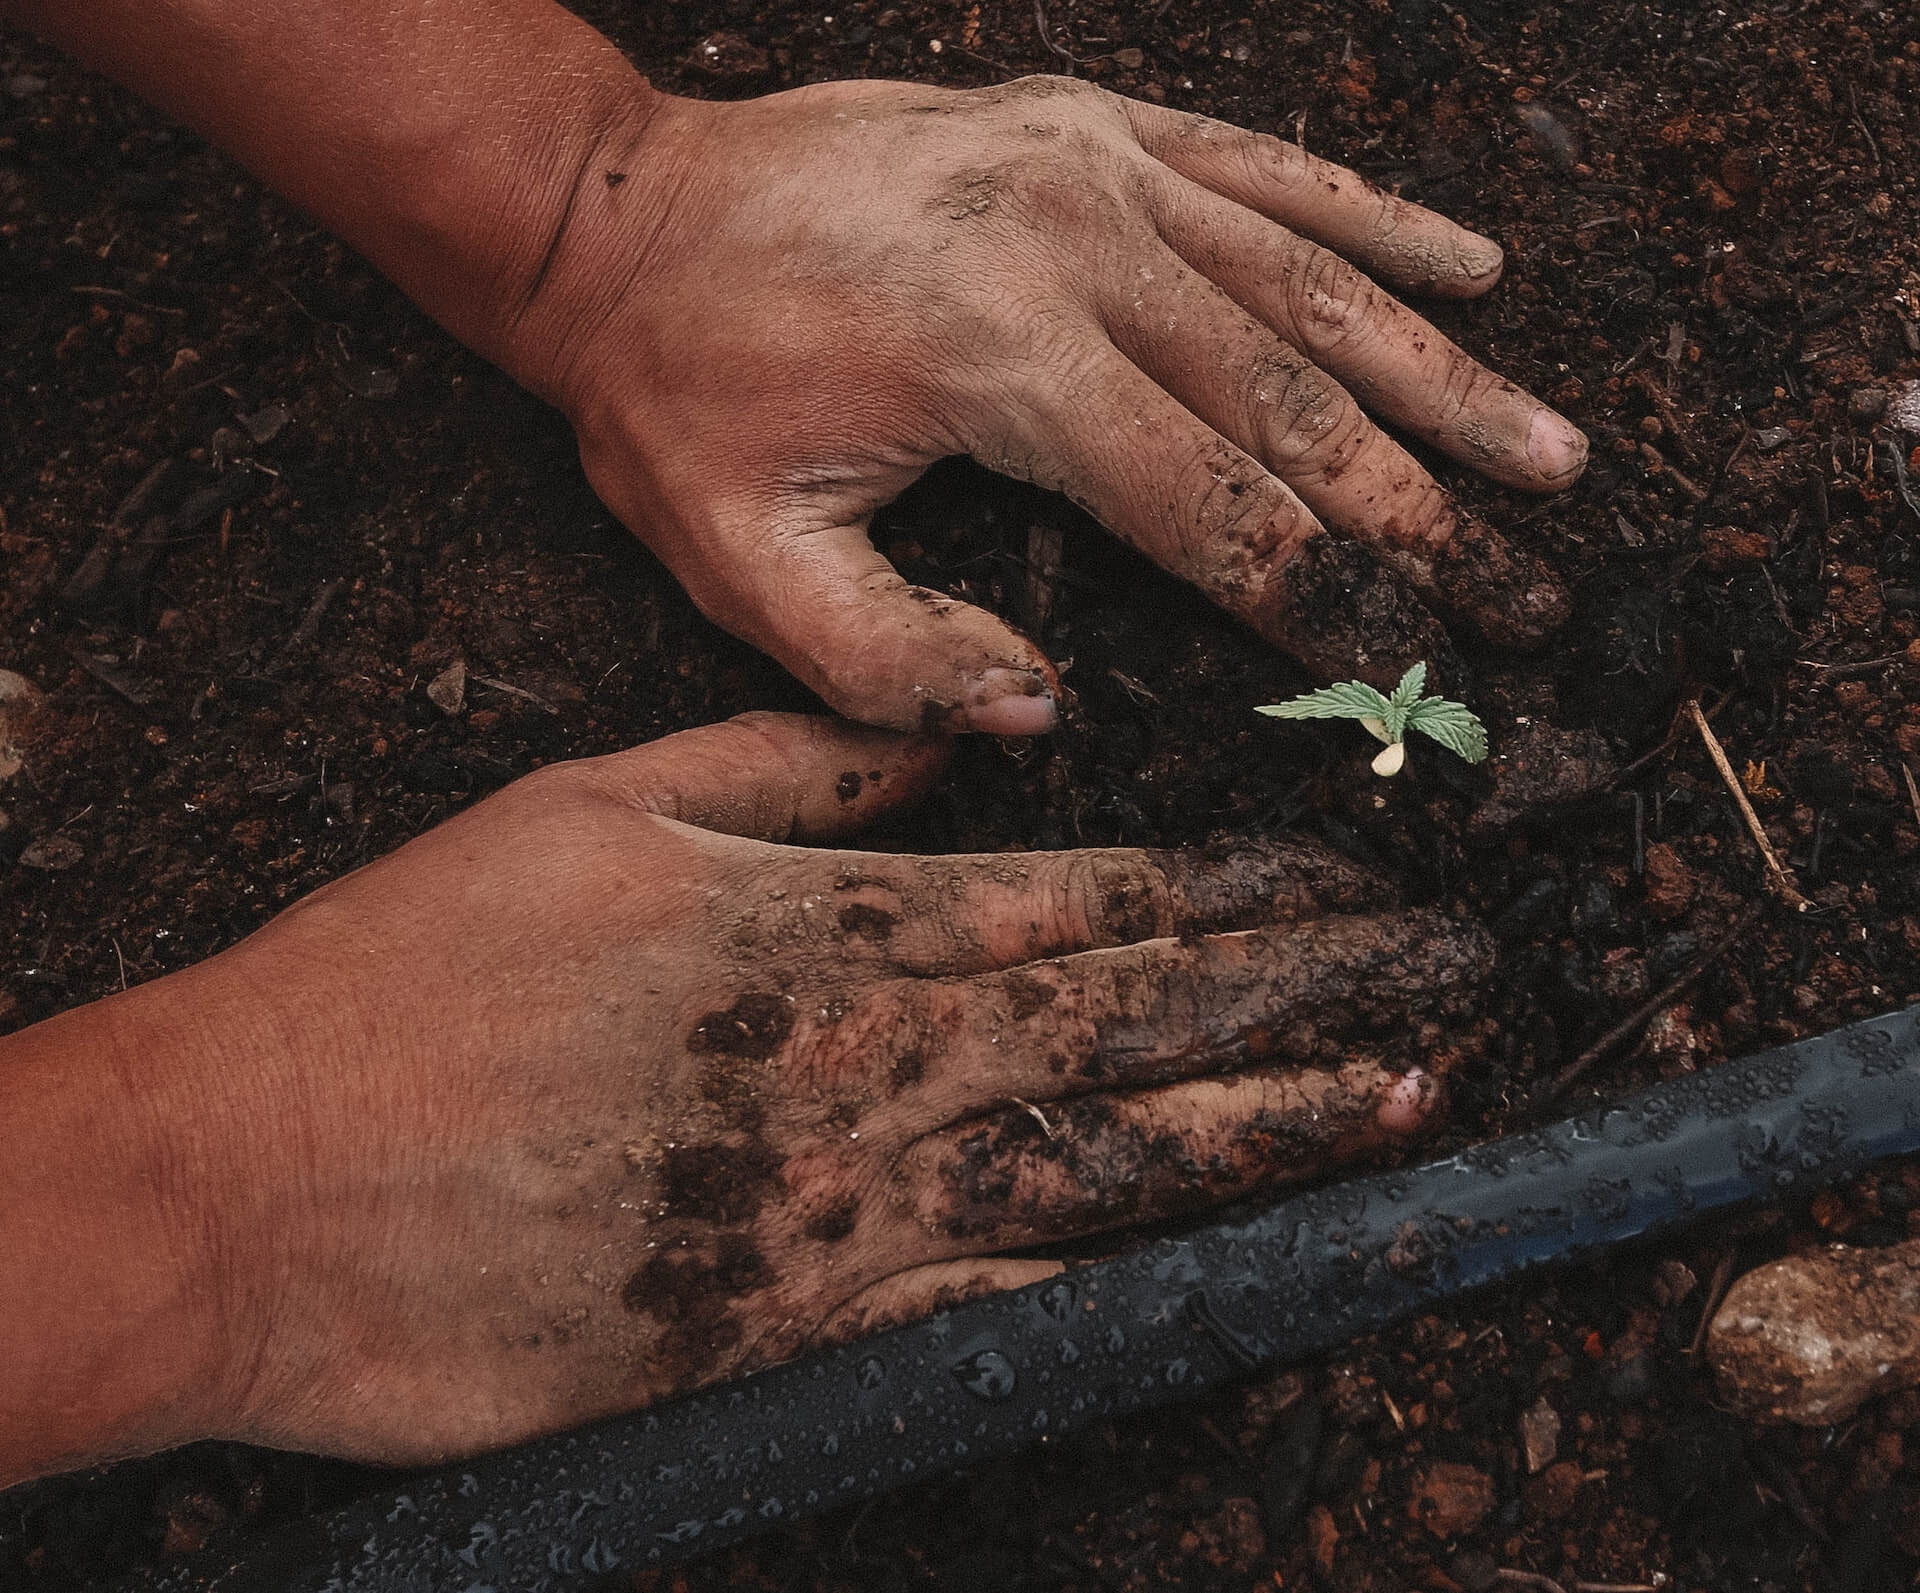 Growing your own: Germinating cannabis seeds